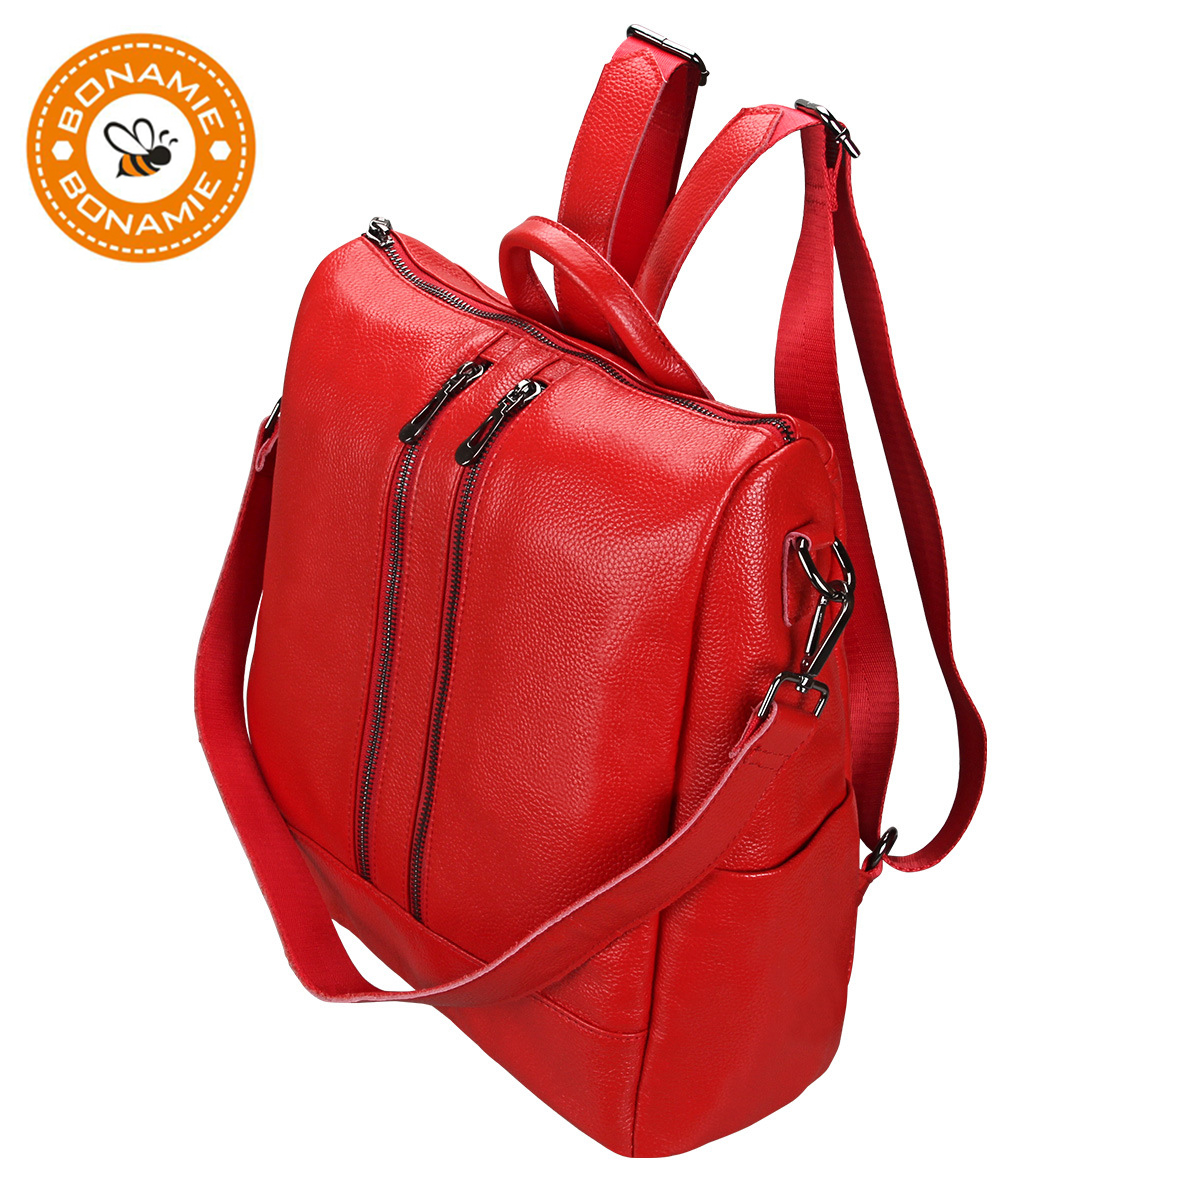 BONAMIE Genuine Leather Luxury Red Womens Backpack Bag Female Ladies Mochila Shoulder Bags Fashion School Backpack For GirlsBONAMIE Genuine Leather Luxury Red Womens Backpack Bag Female Ladies Mochila Shoulder Bags Fashion School Backpack For Girls